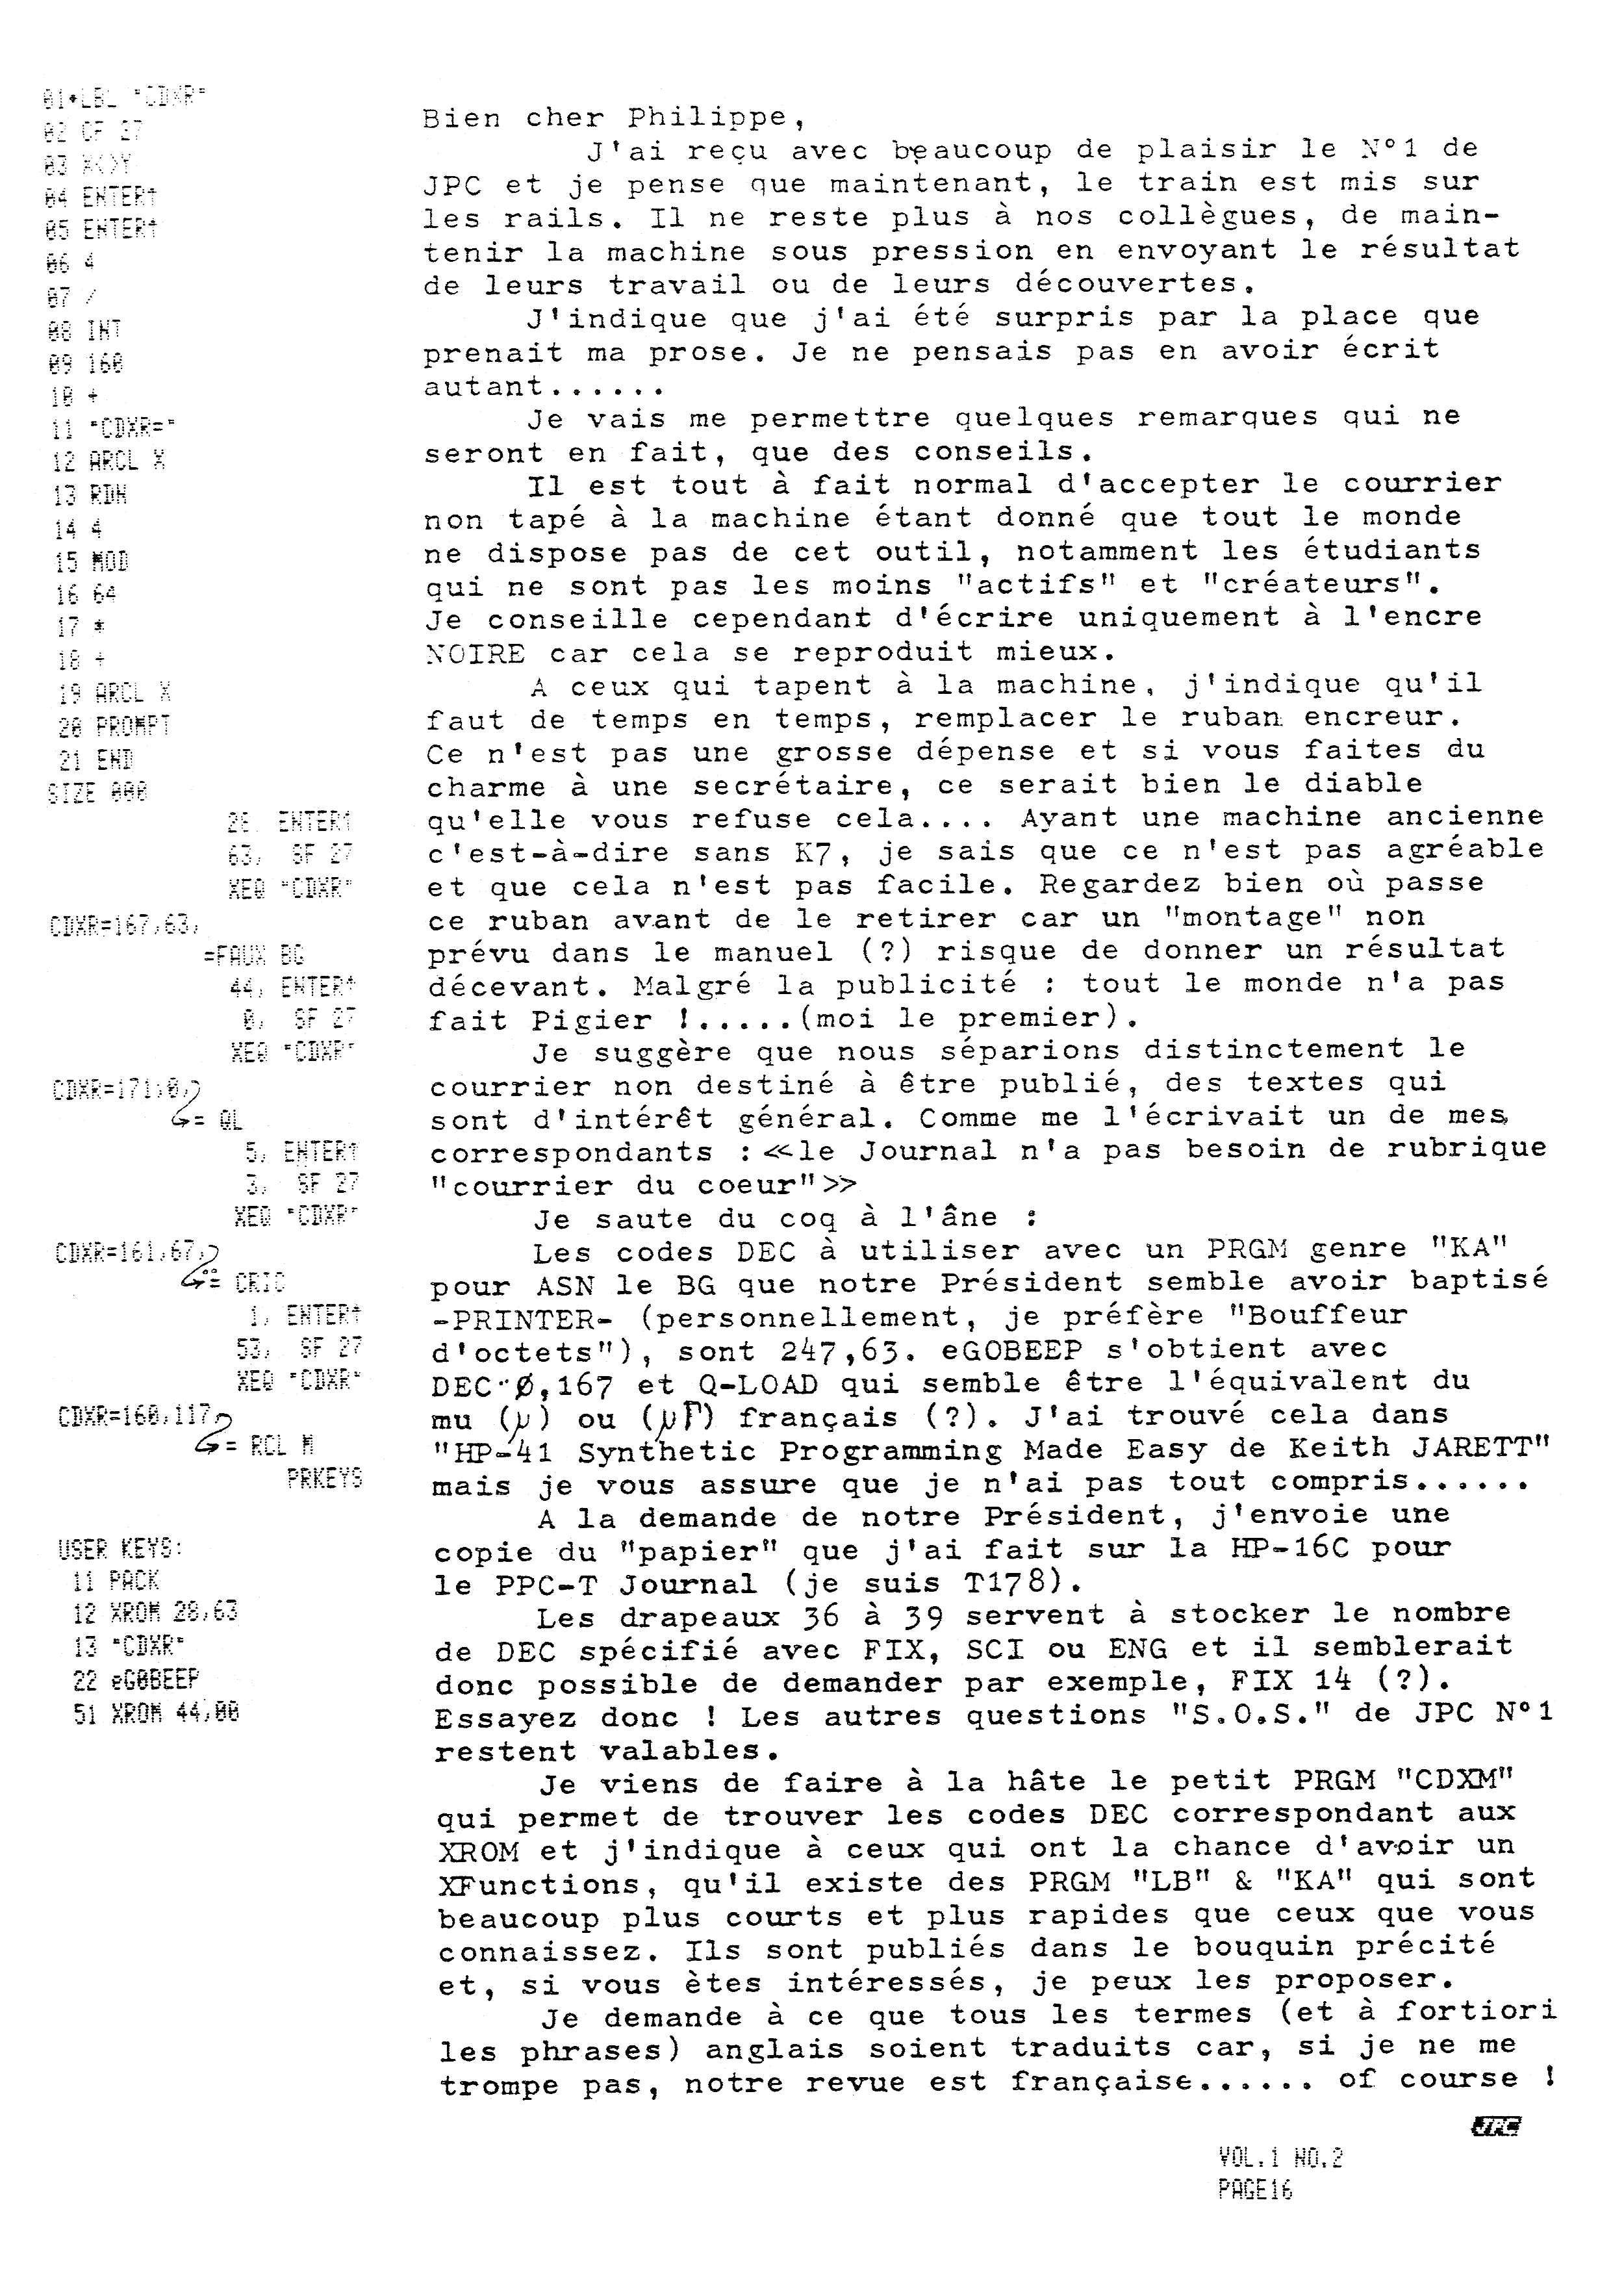 Jp-2-page-16-1000